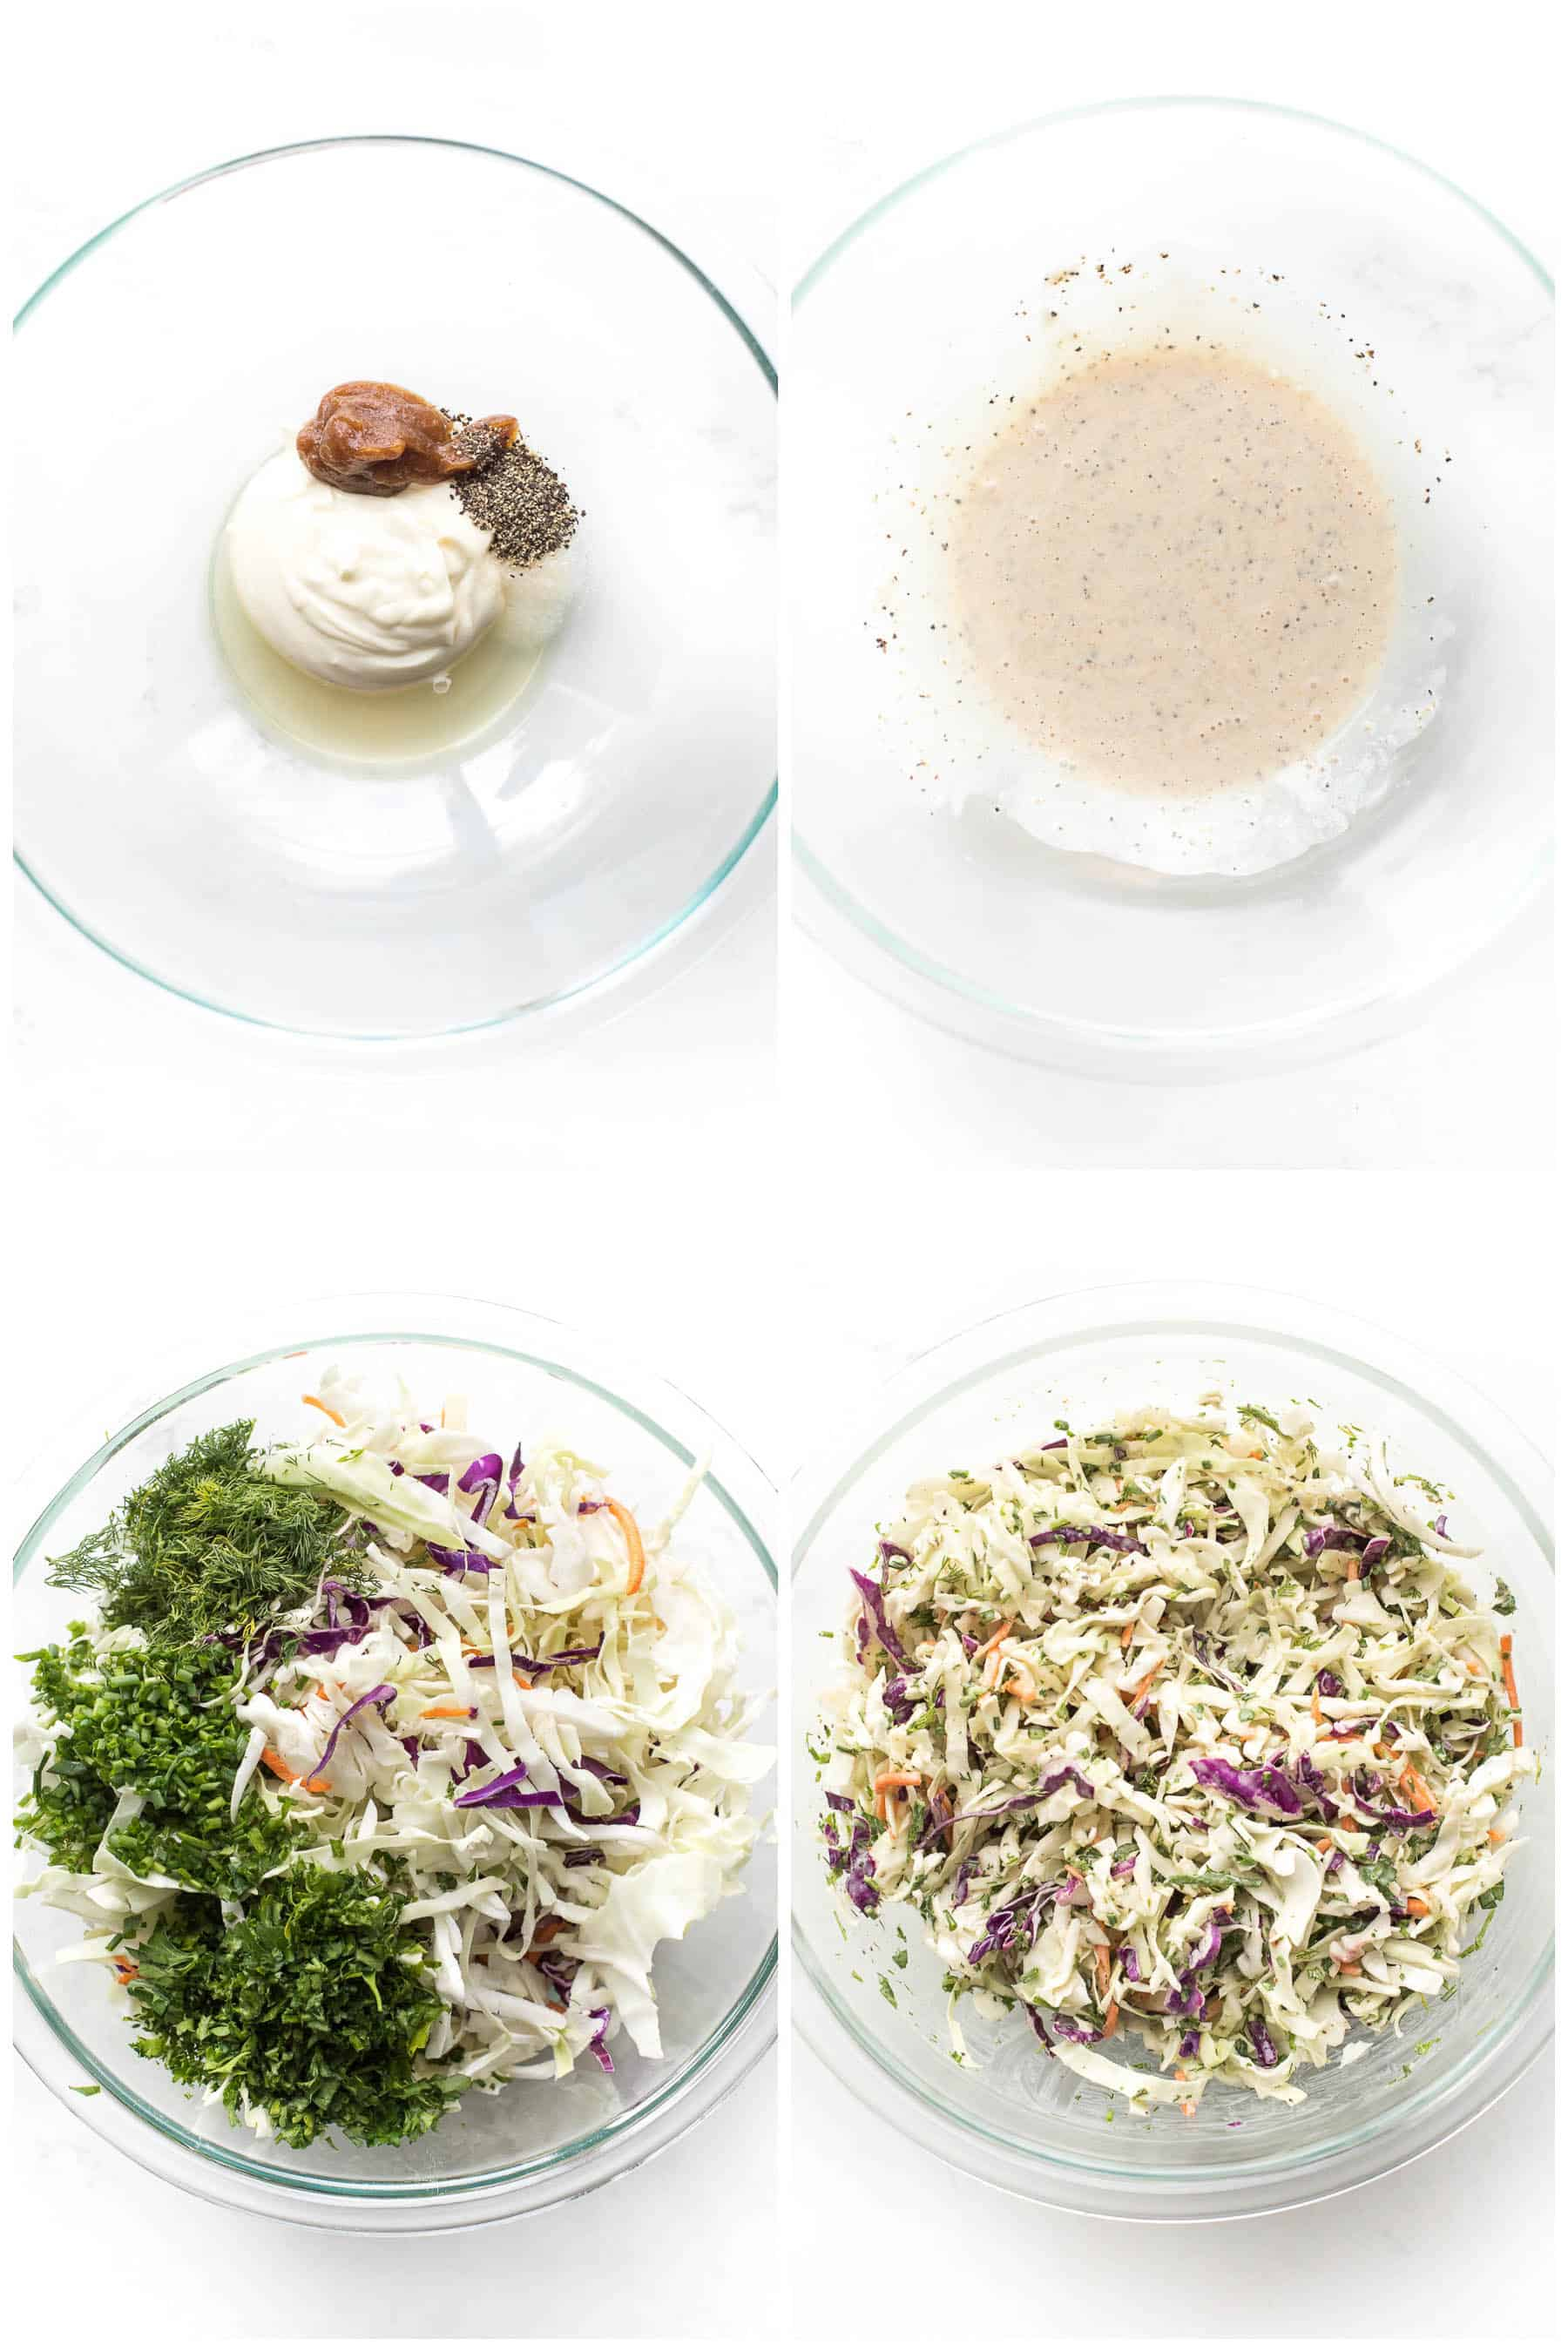 steps to making coleslaw